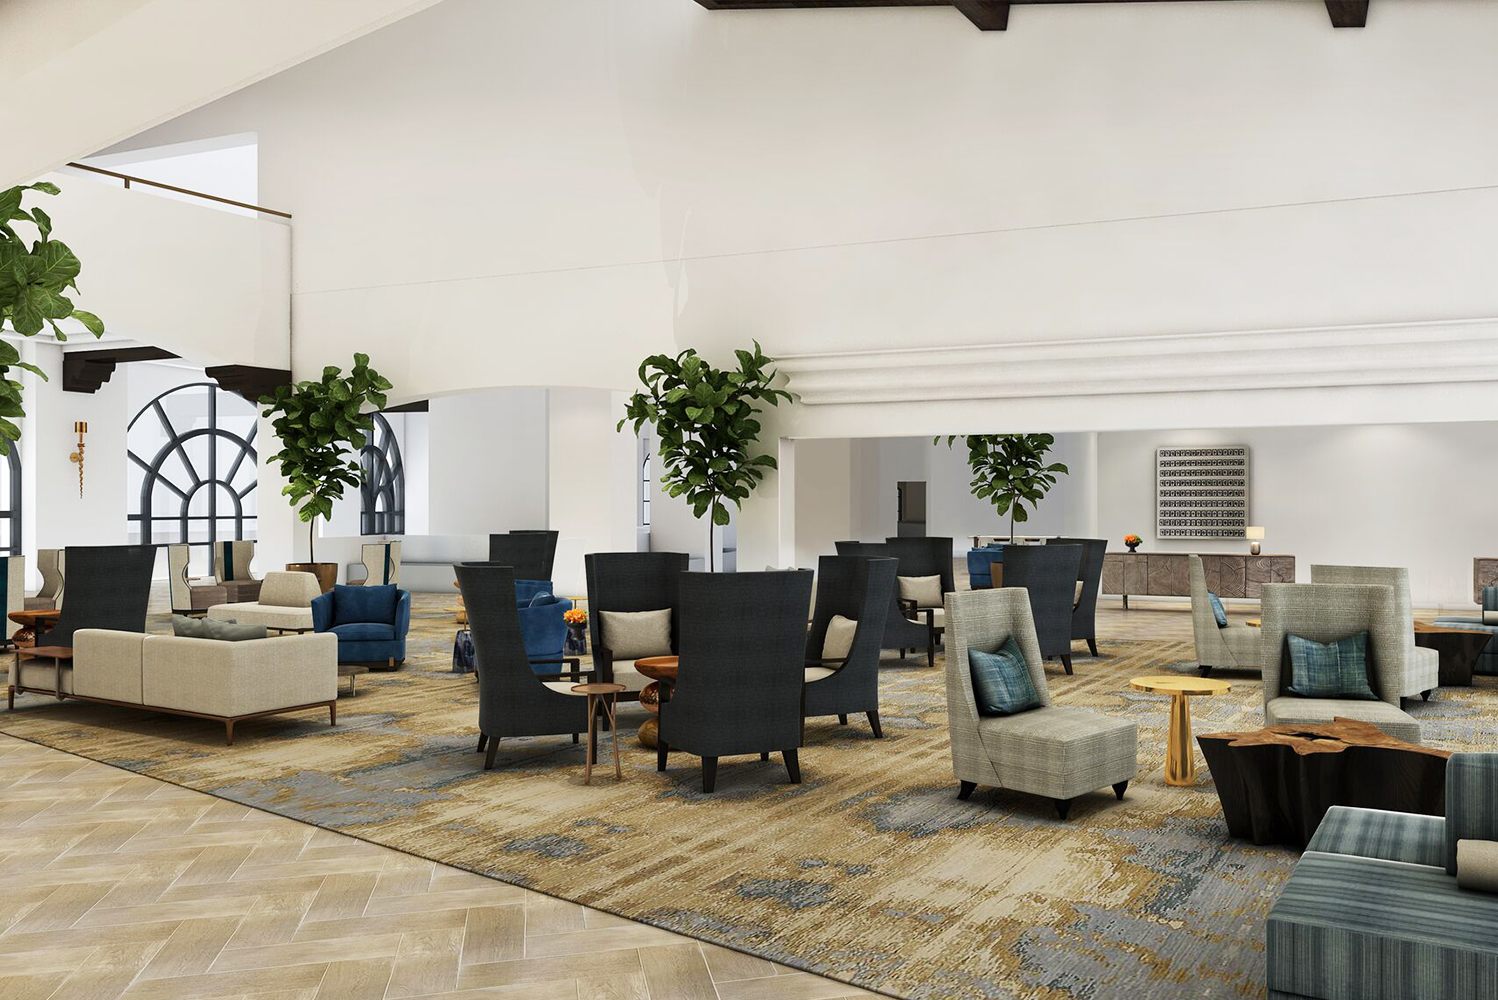 Hilton and the Fess Parker family started the second phase of the complete renovation and rebrand of The Fess Parker, A Doubletree by Hilton Resort.